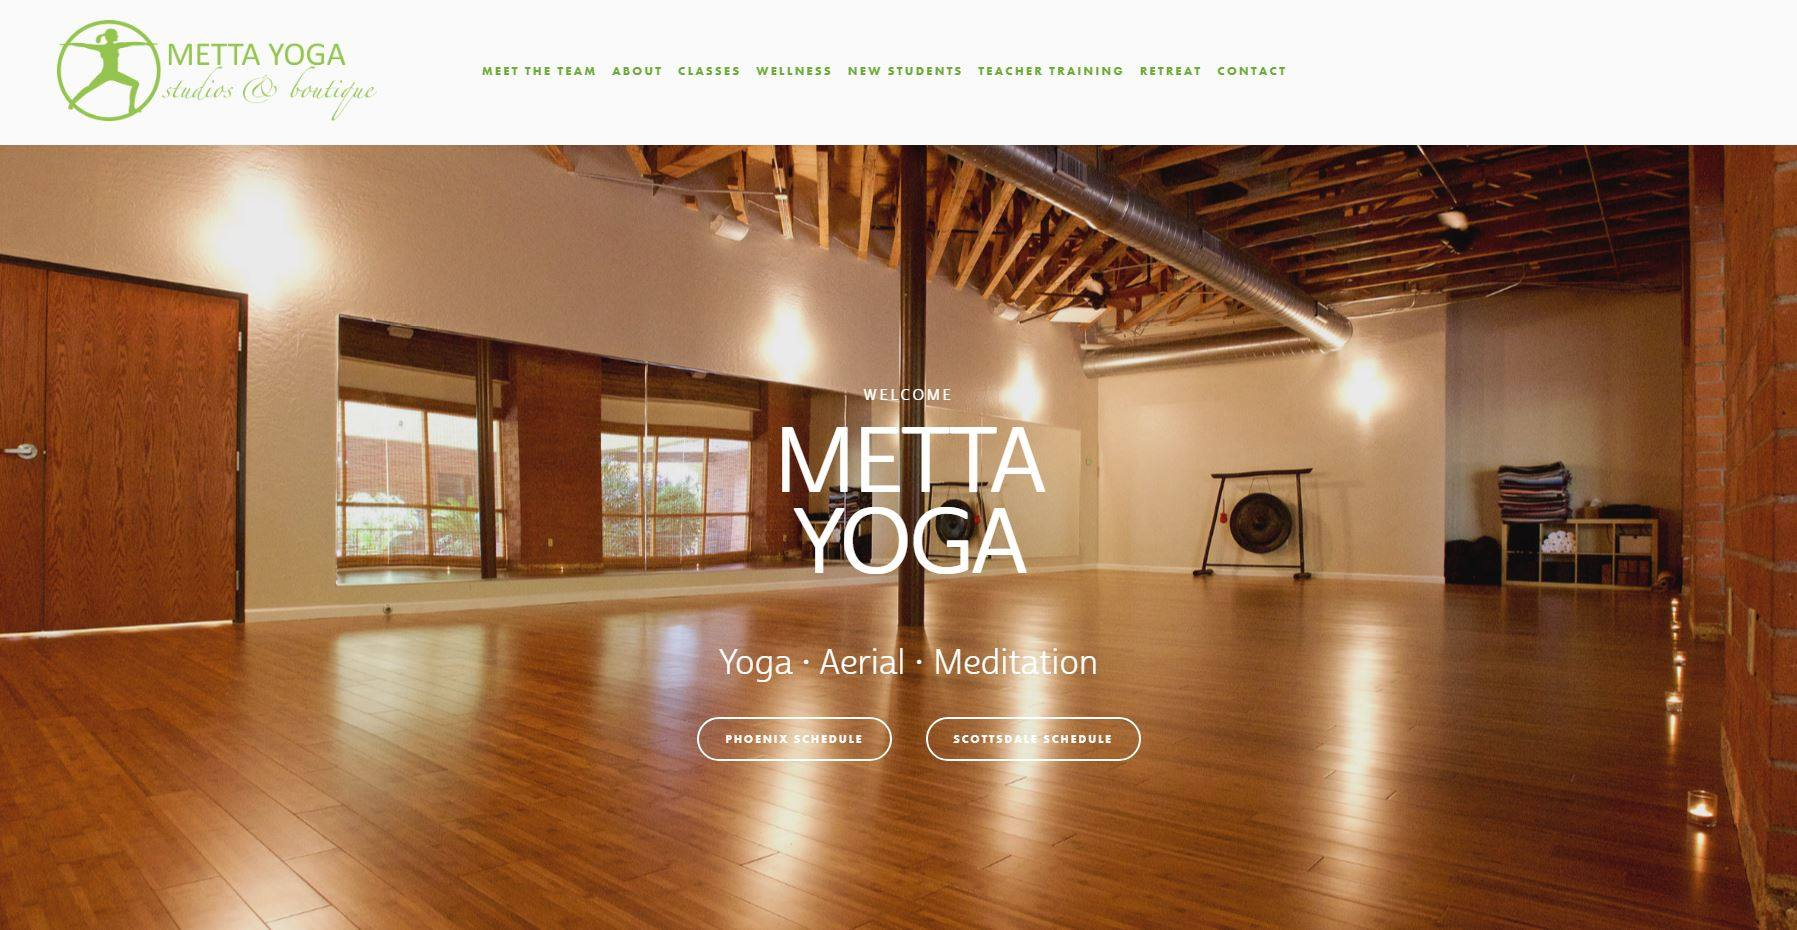 Metta Yoga website redesign